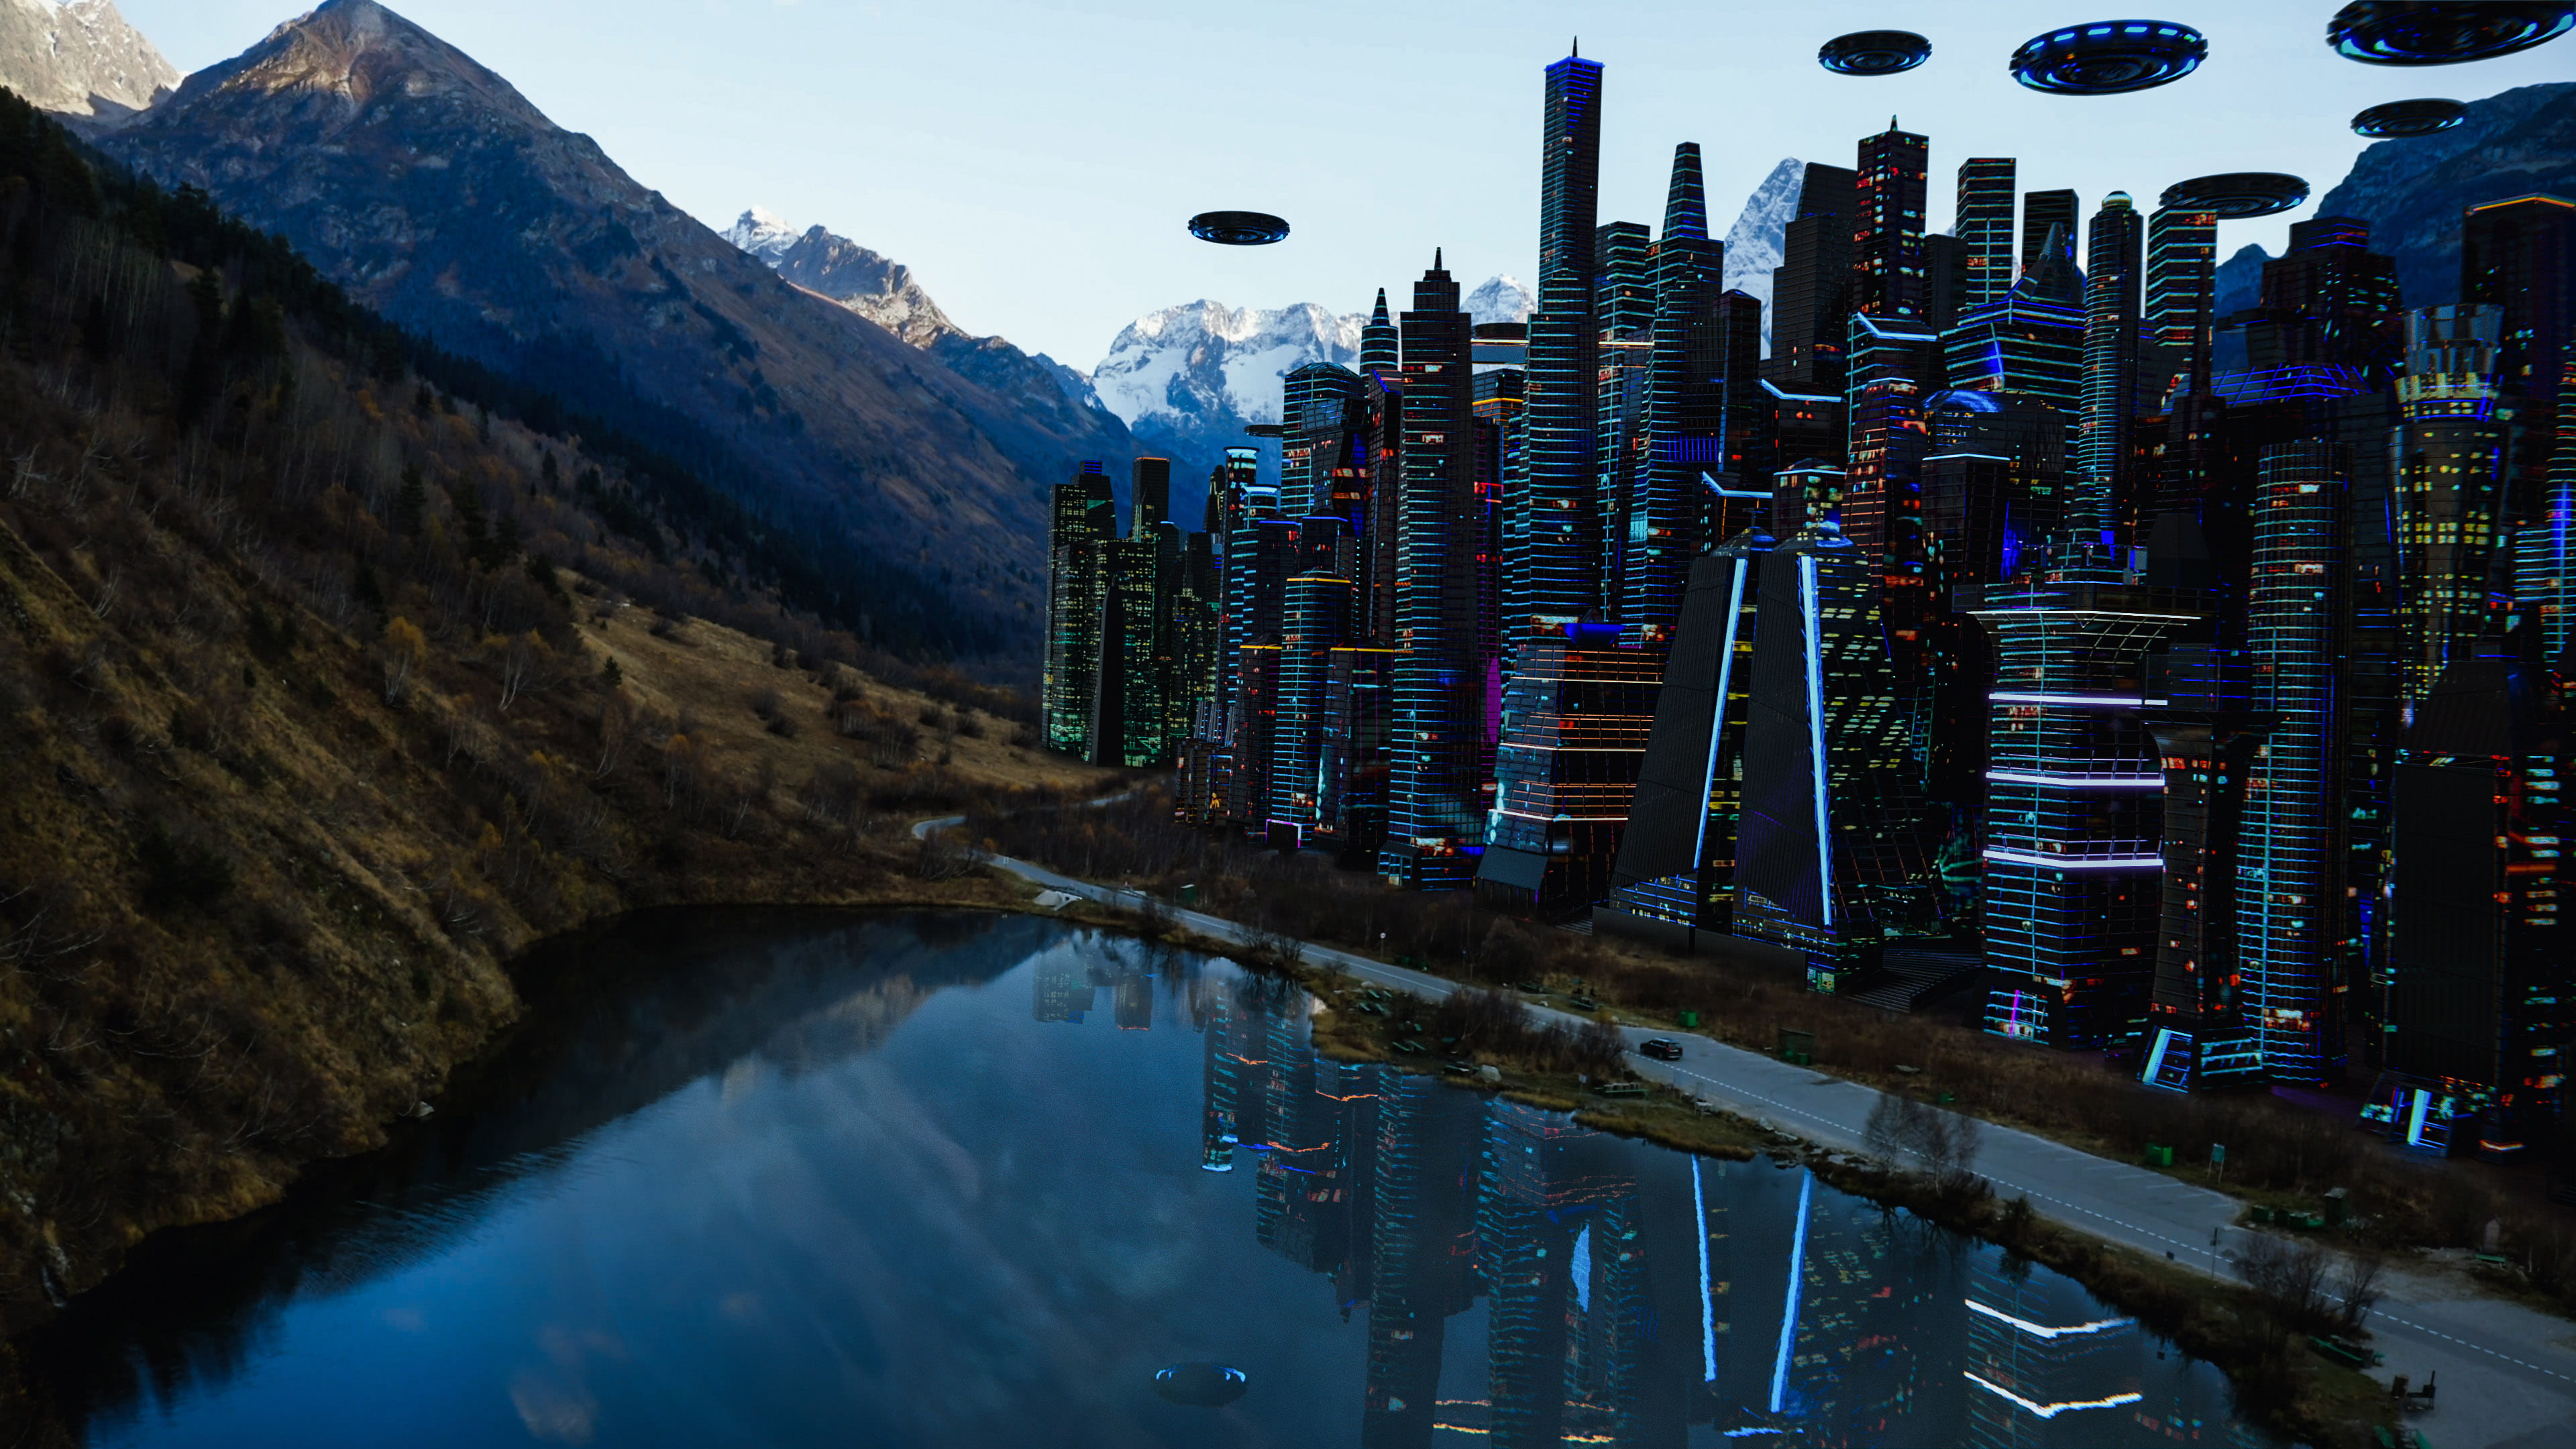 Image of a vast mountainous landscape fused with science-fiction inspired computer-generated imagery.